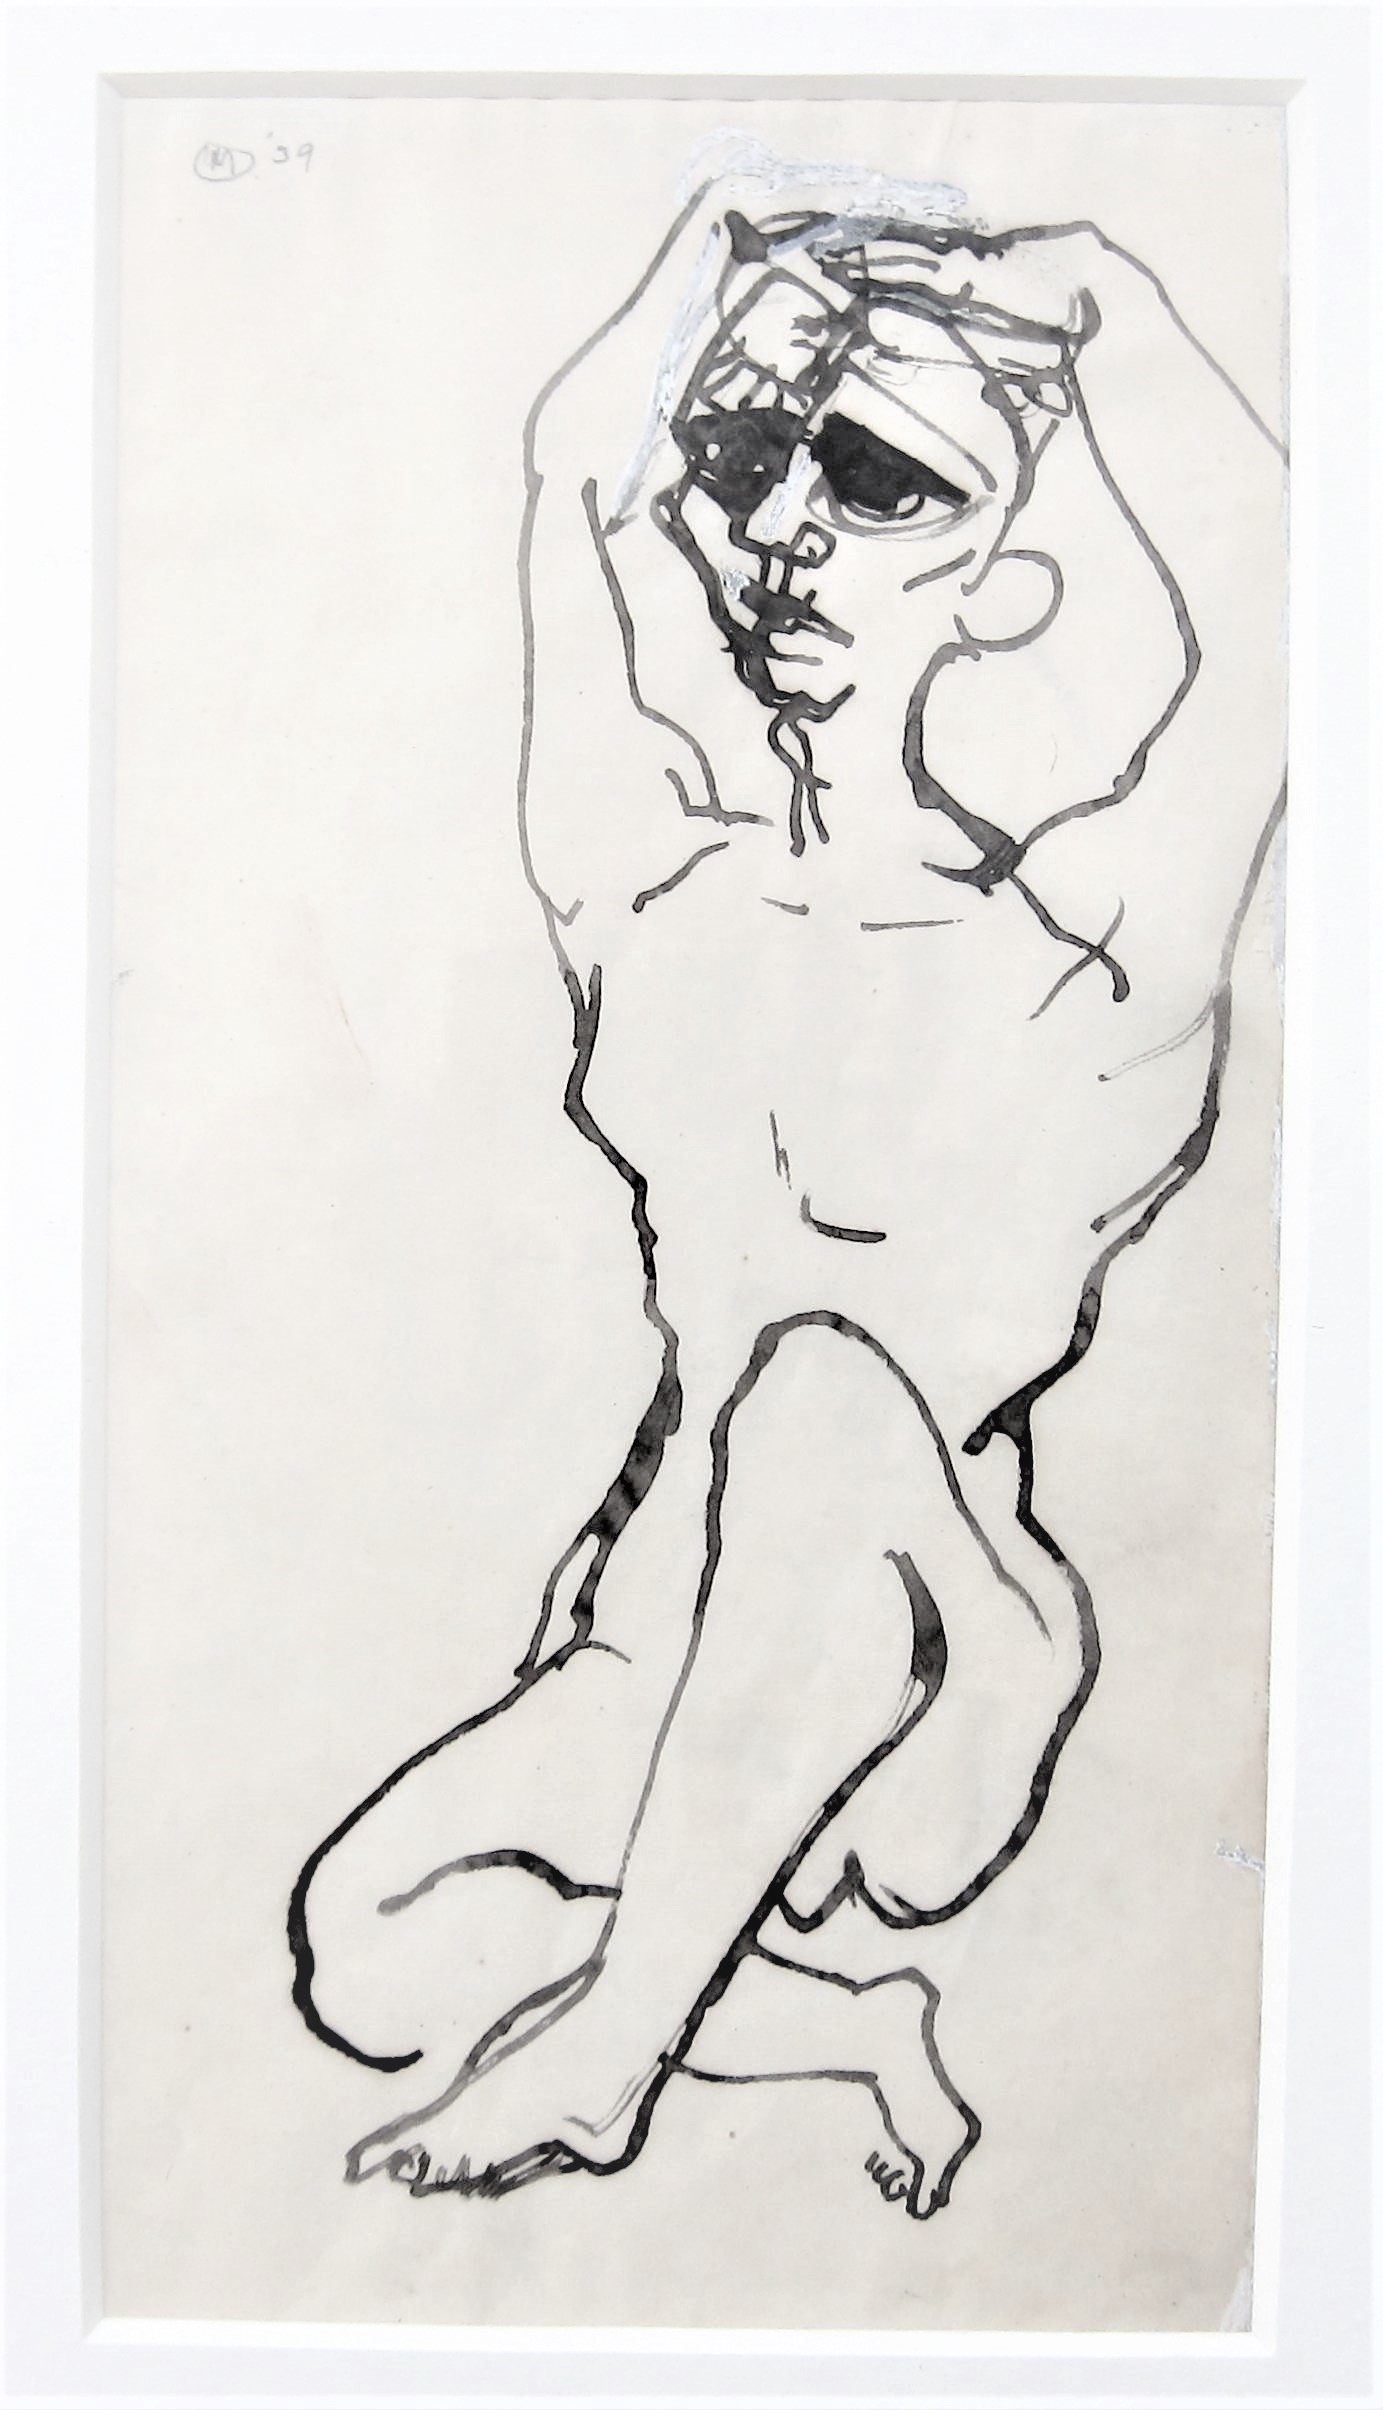 BERNARD MEADOWS R.A. [1915-2005]. Seated Figure, 1939. ink on paper; signed and dated. 25 x 13 cm [